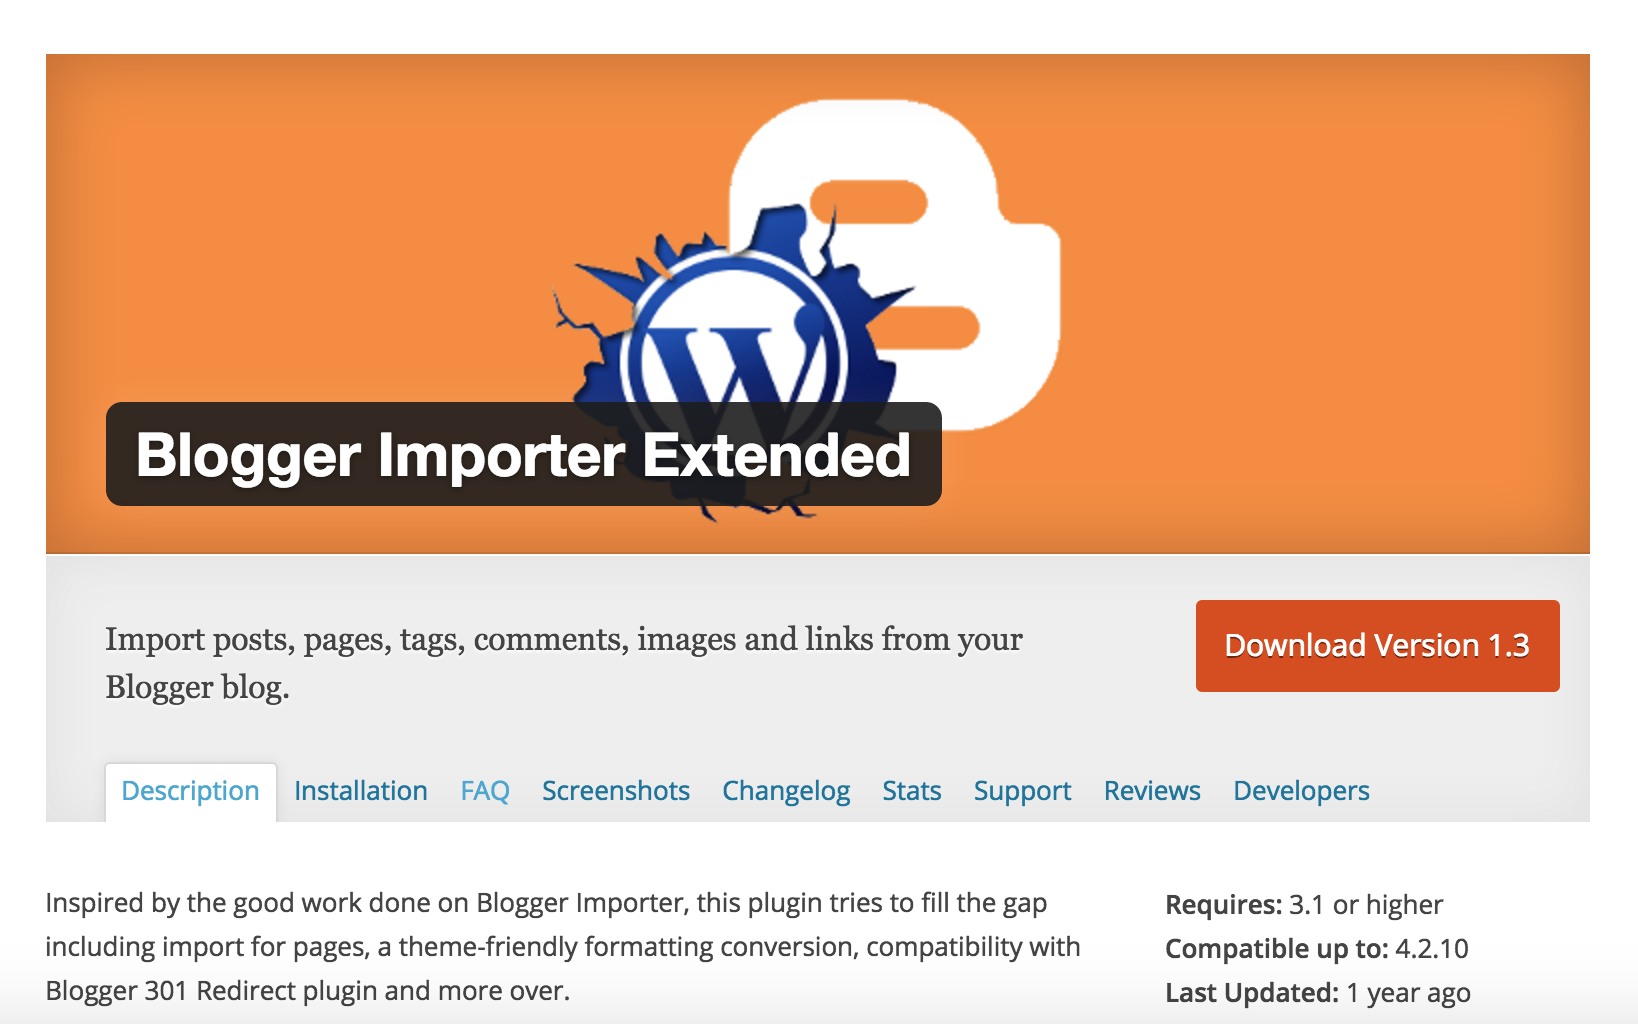 Blogger Importer Extended (BIE) – The importer has stopped unexpectedly